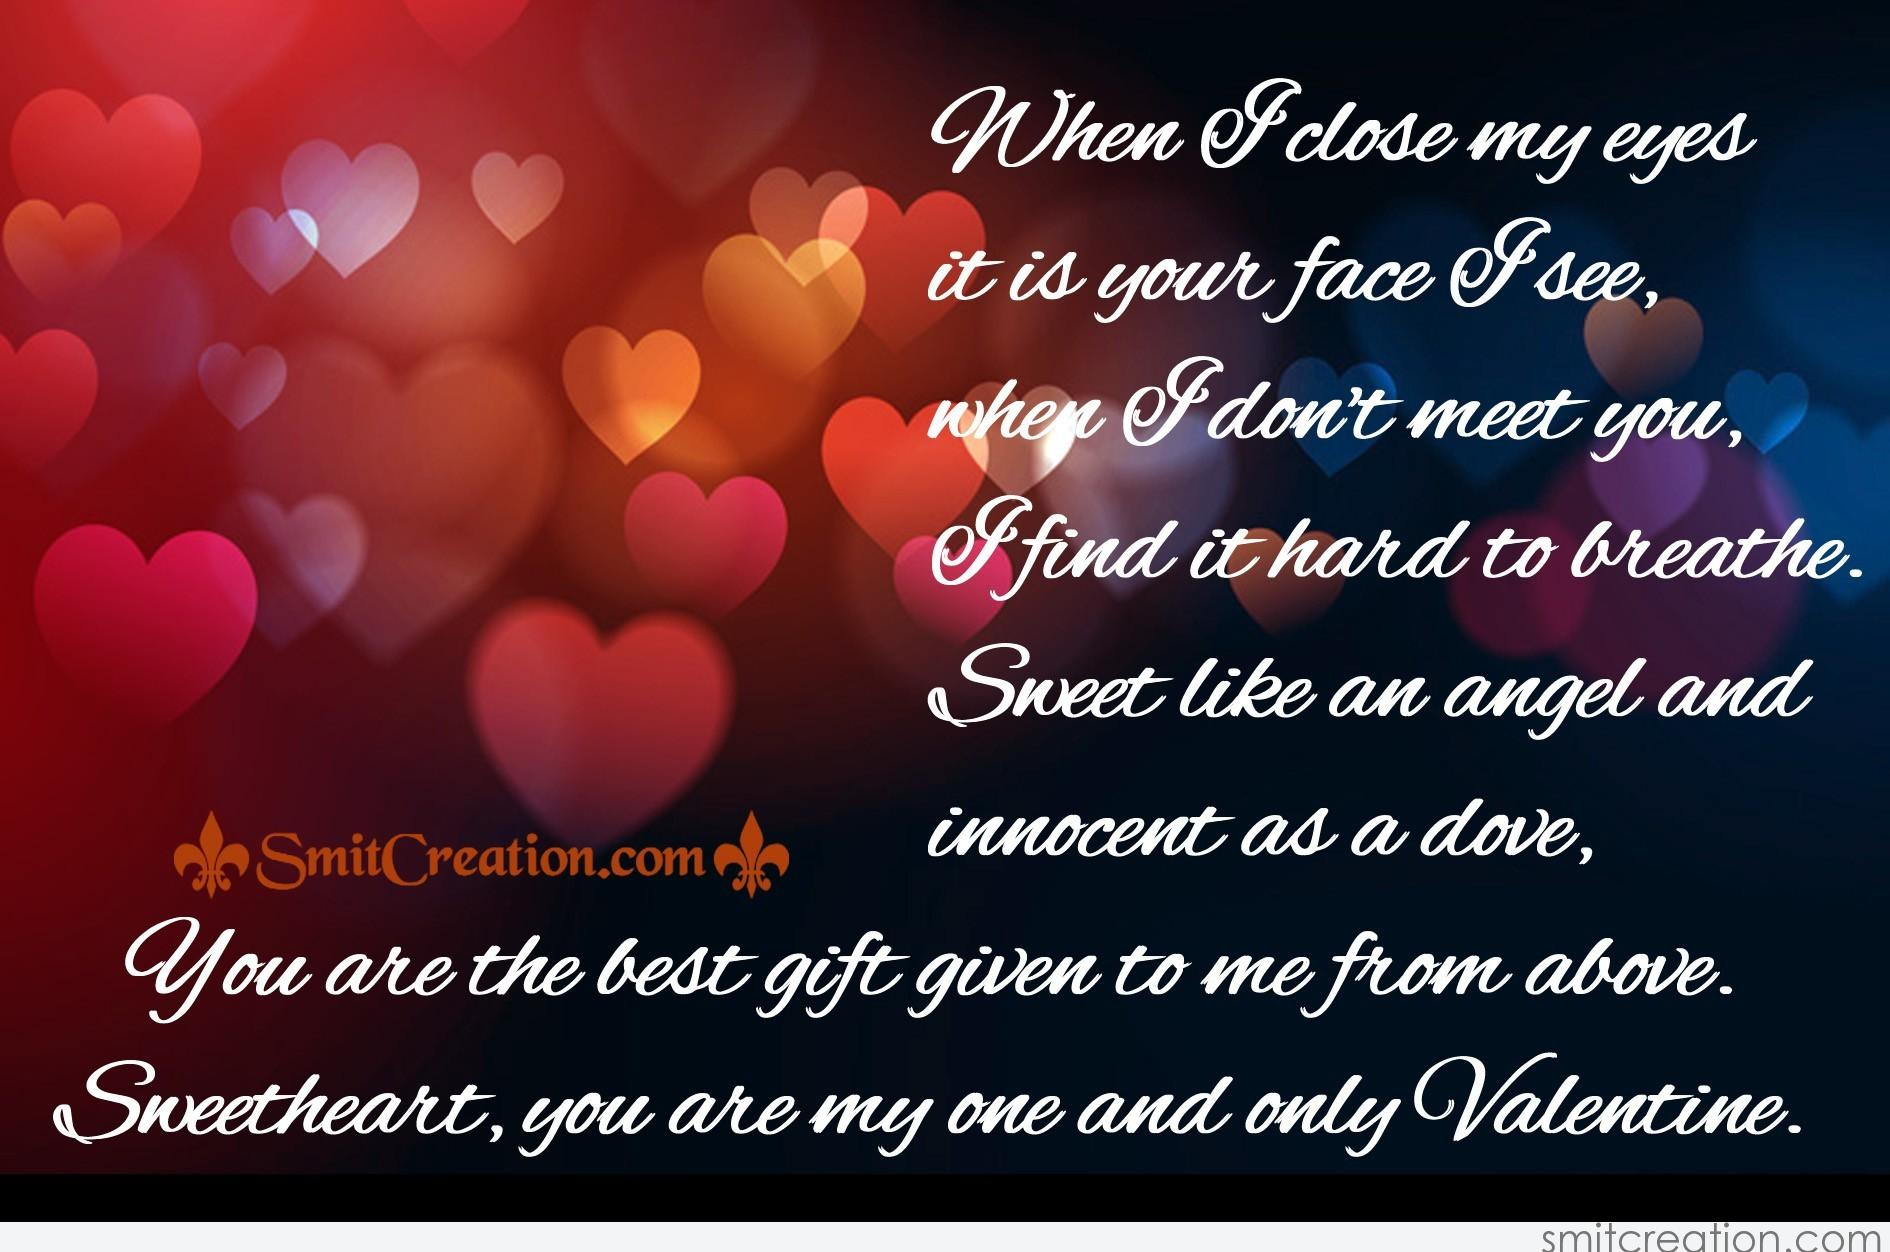 Sweetheart You Are My One And Only Valentine